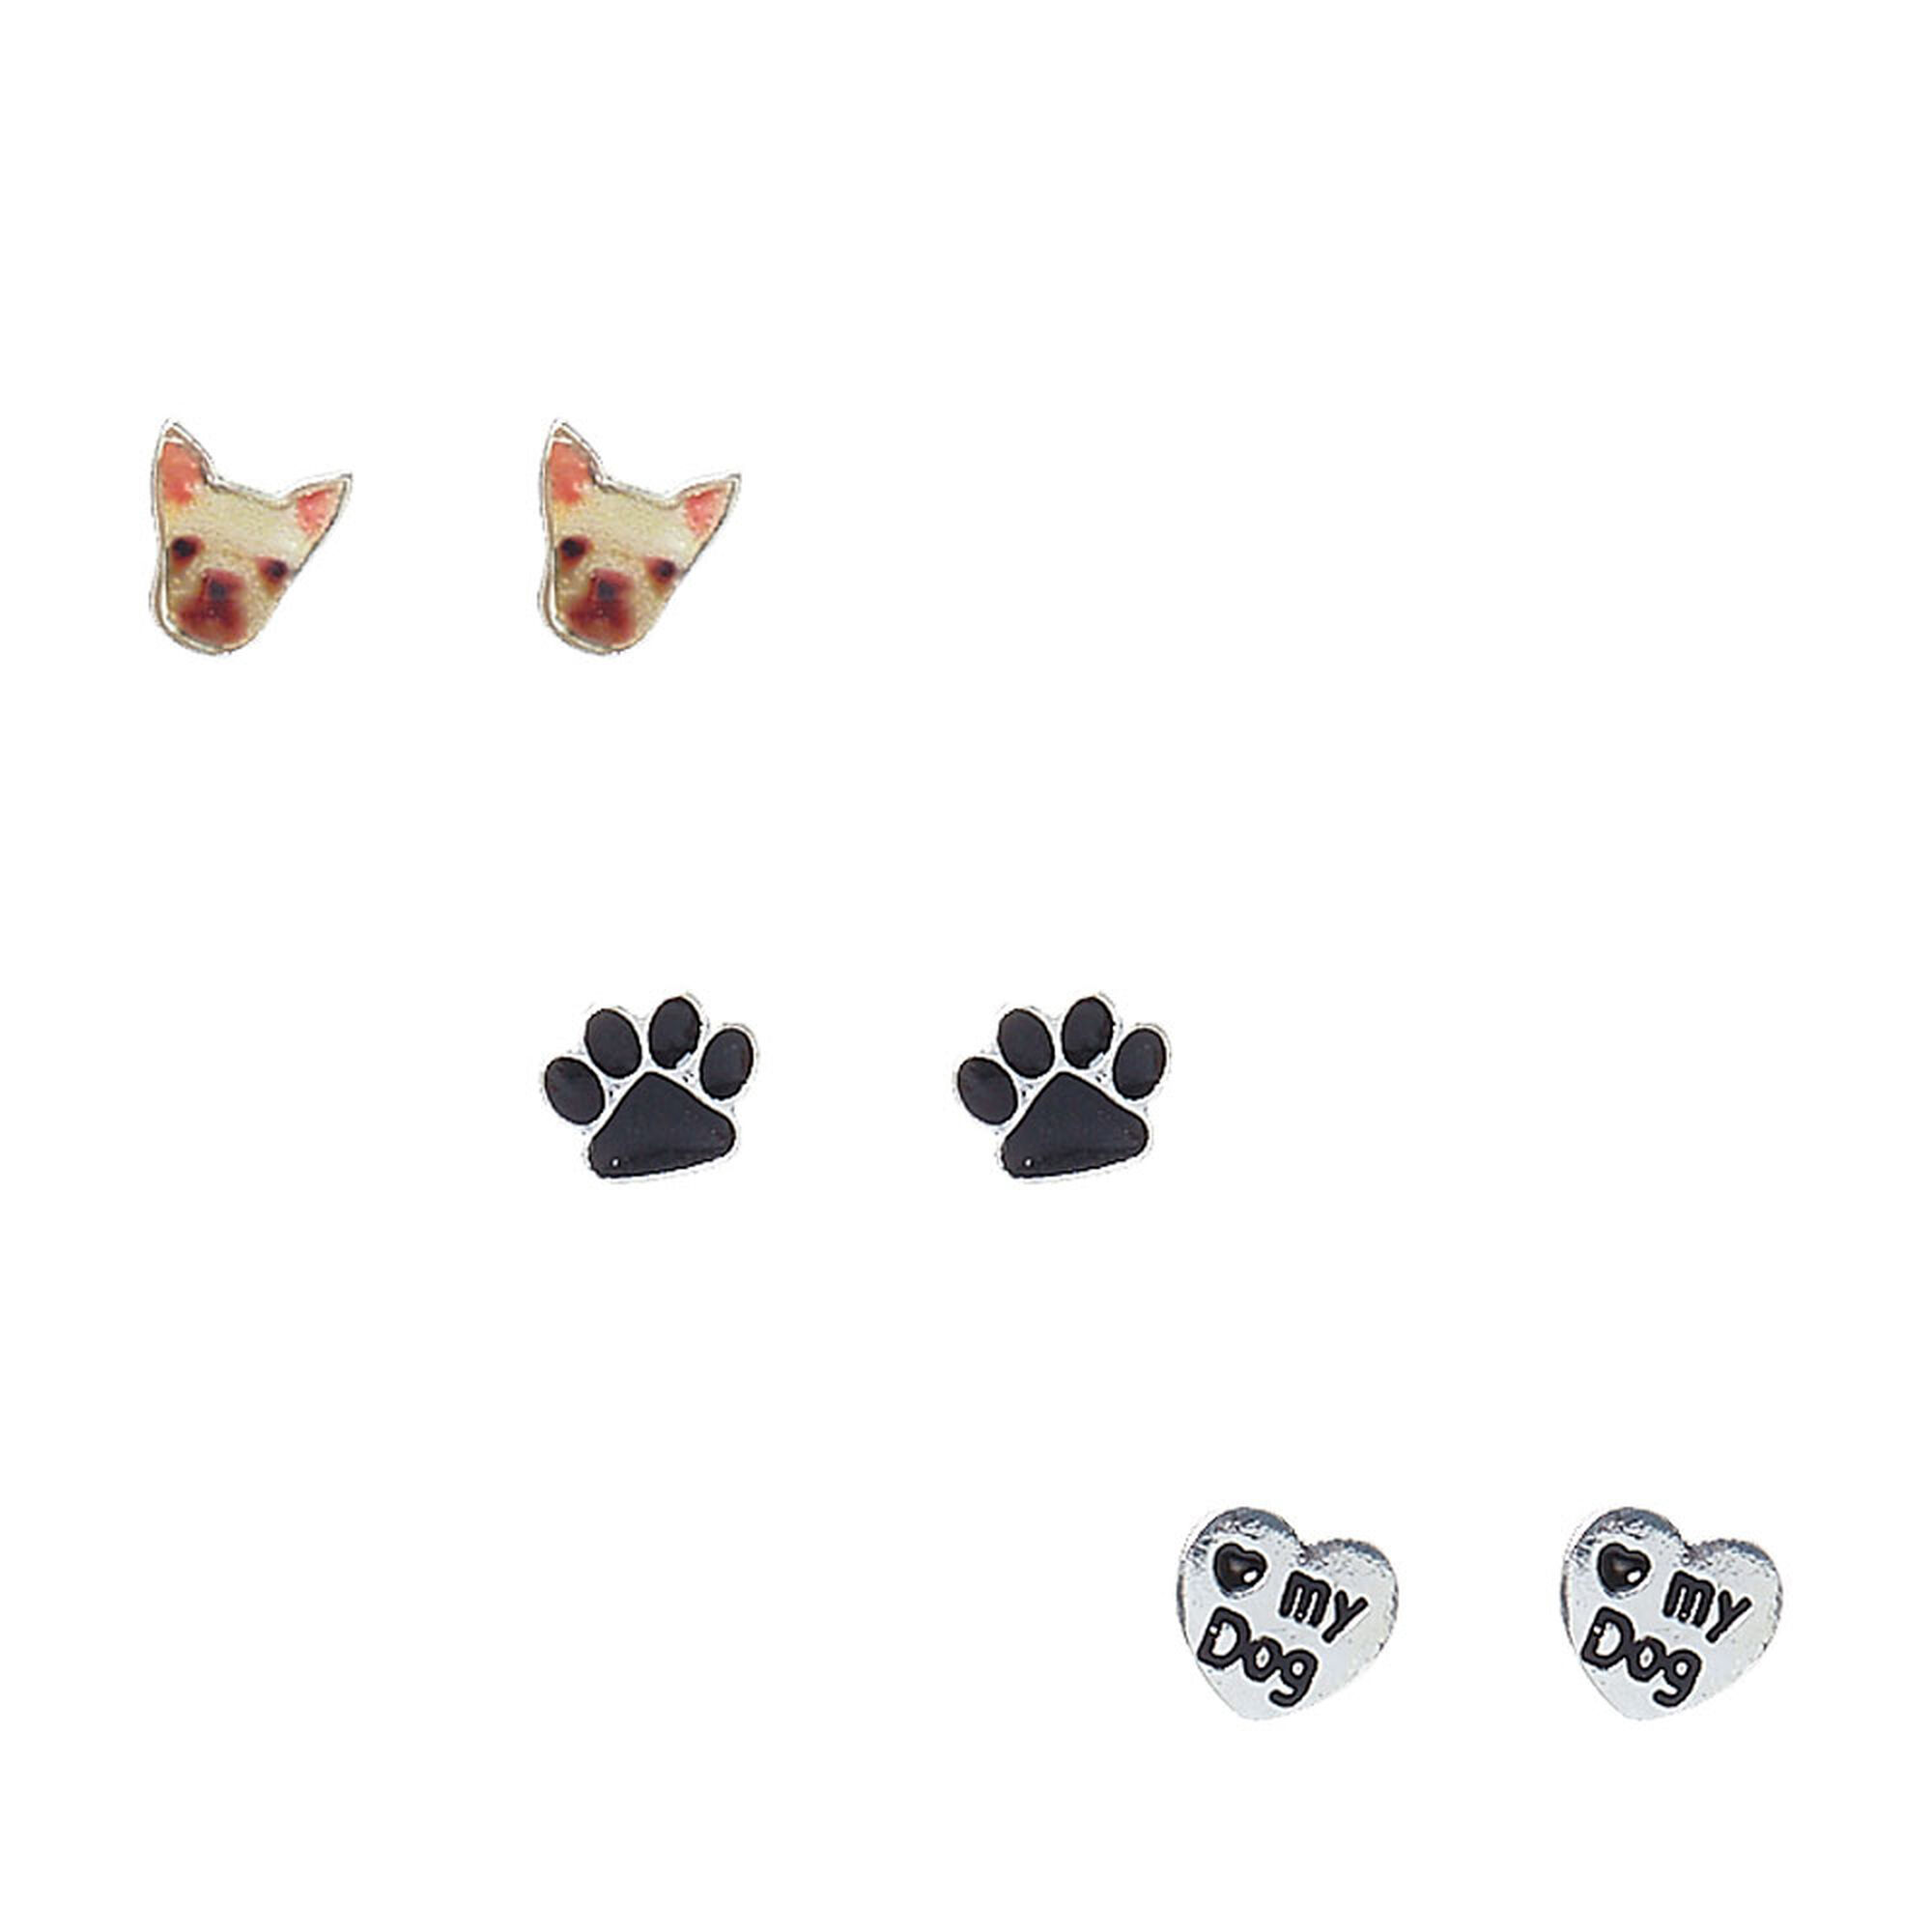 gold silver jewelry earring color cute mark earrings tiny item print cat dog paw stud round